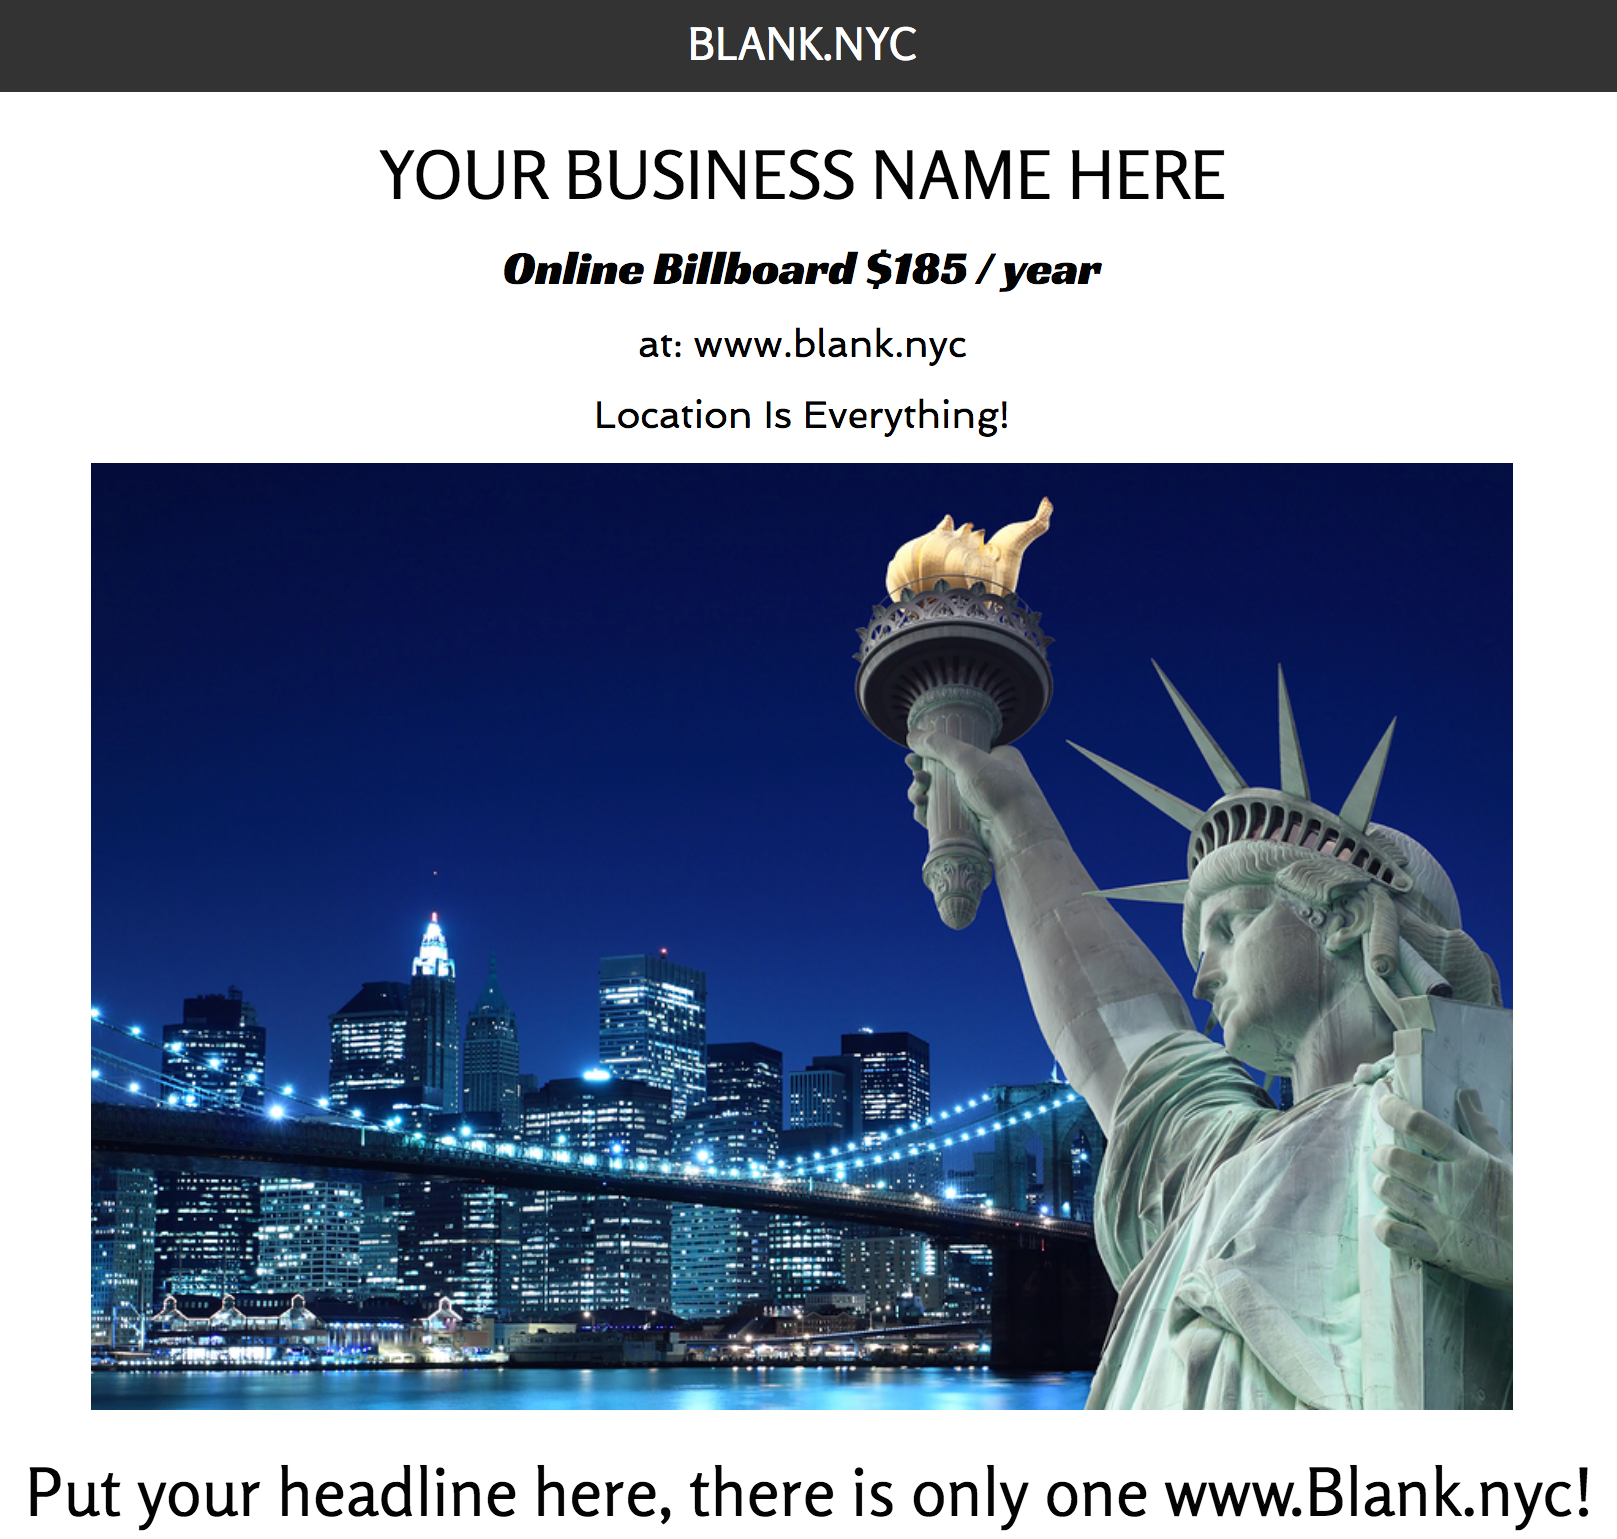 Digital Property Www Blank Nyc Available For Rent 185 Year Business Names Billboard Social Media